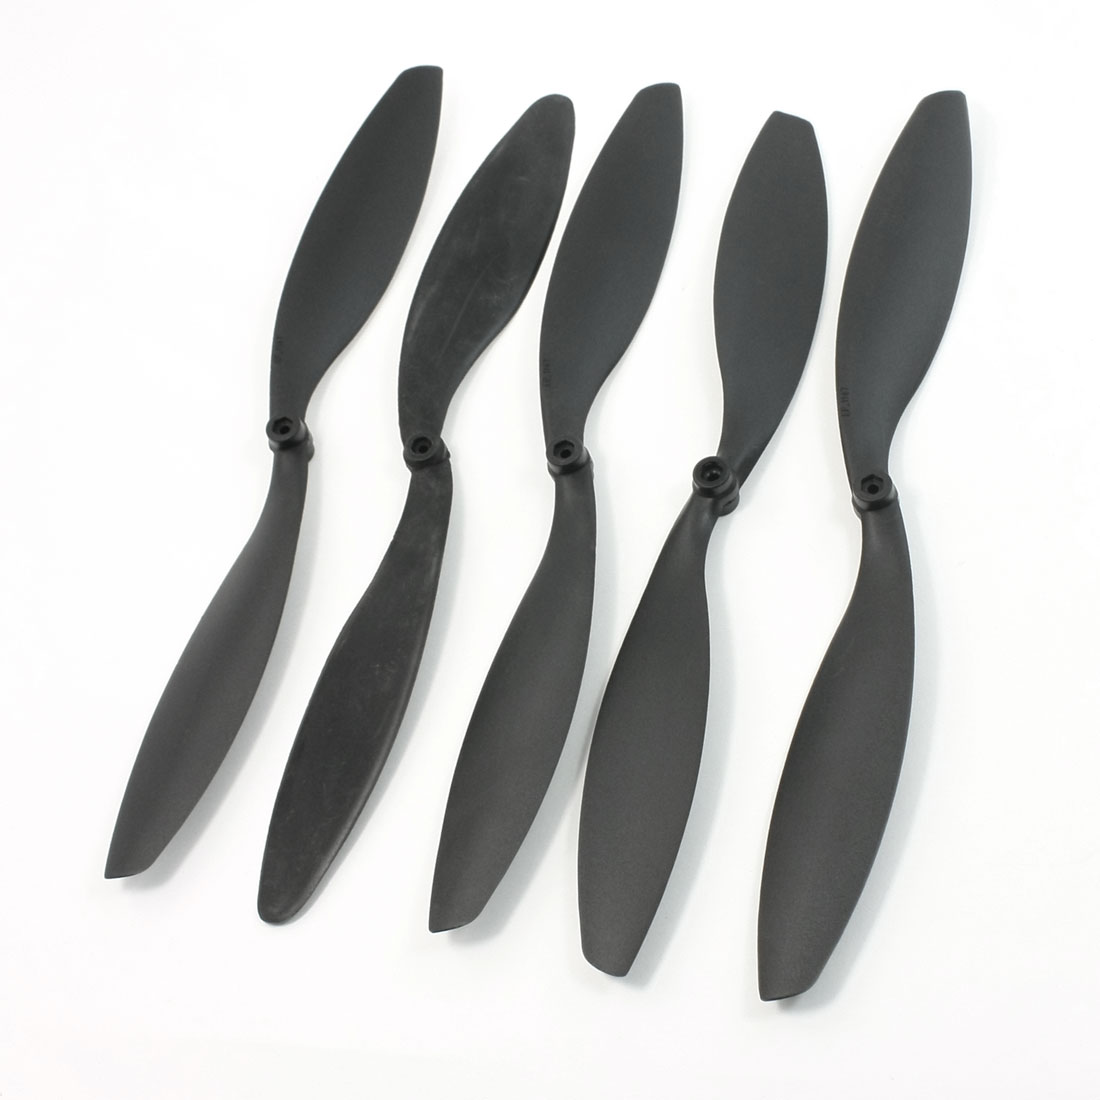 5 x RC Plane Quad Copter 11x4.7 279x119mm 3mm Hole Propellers Props Black